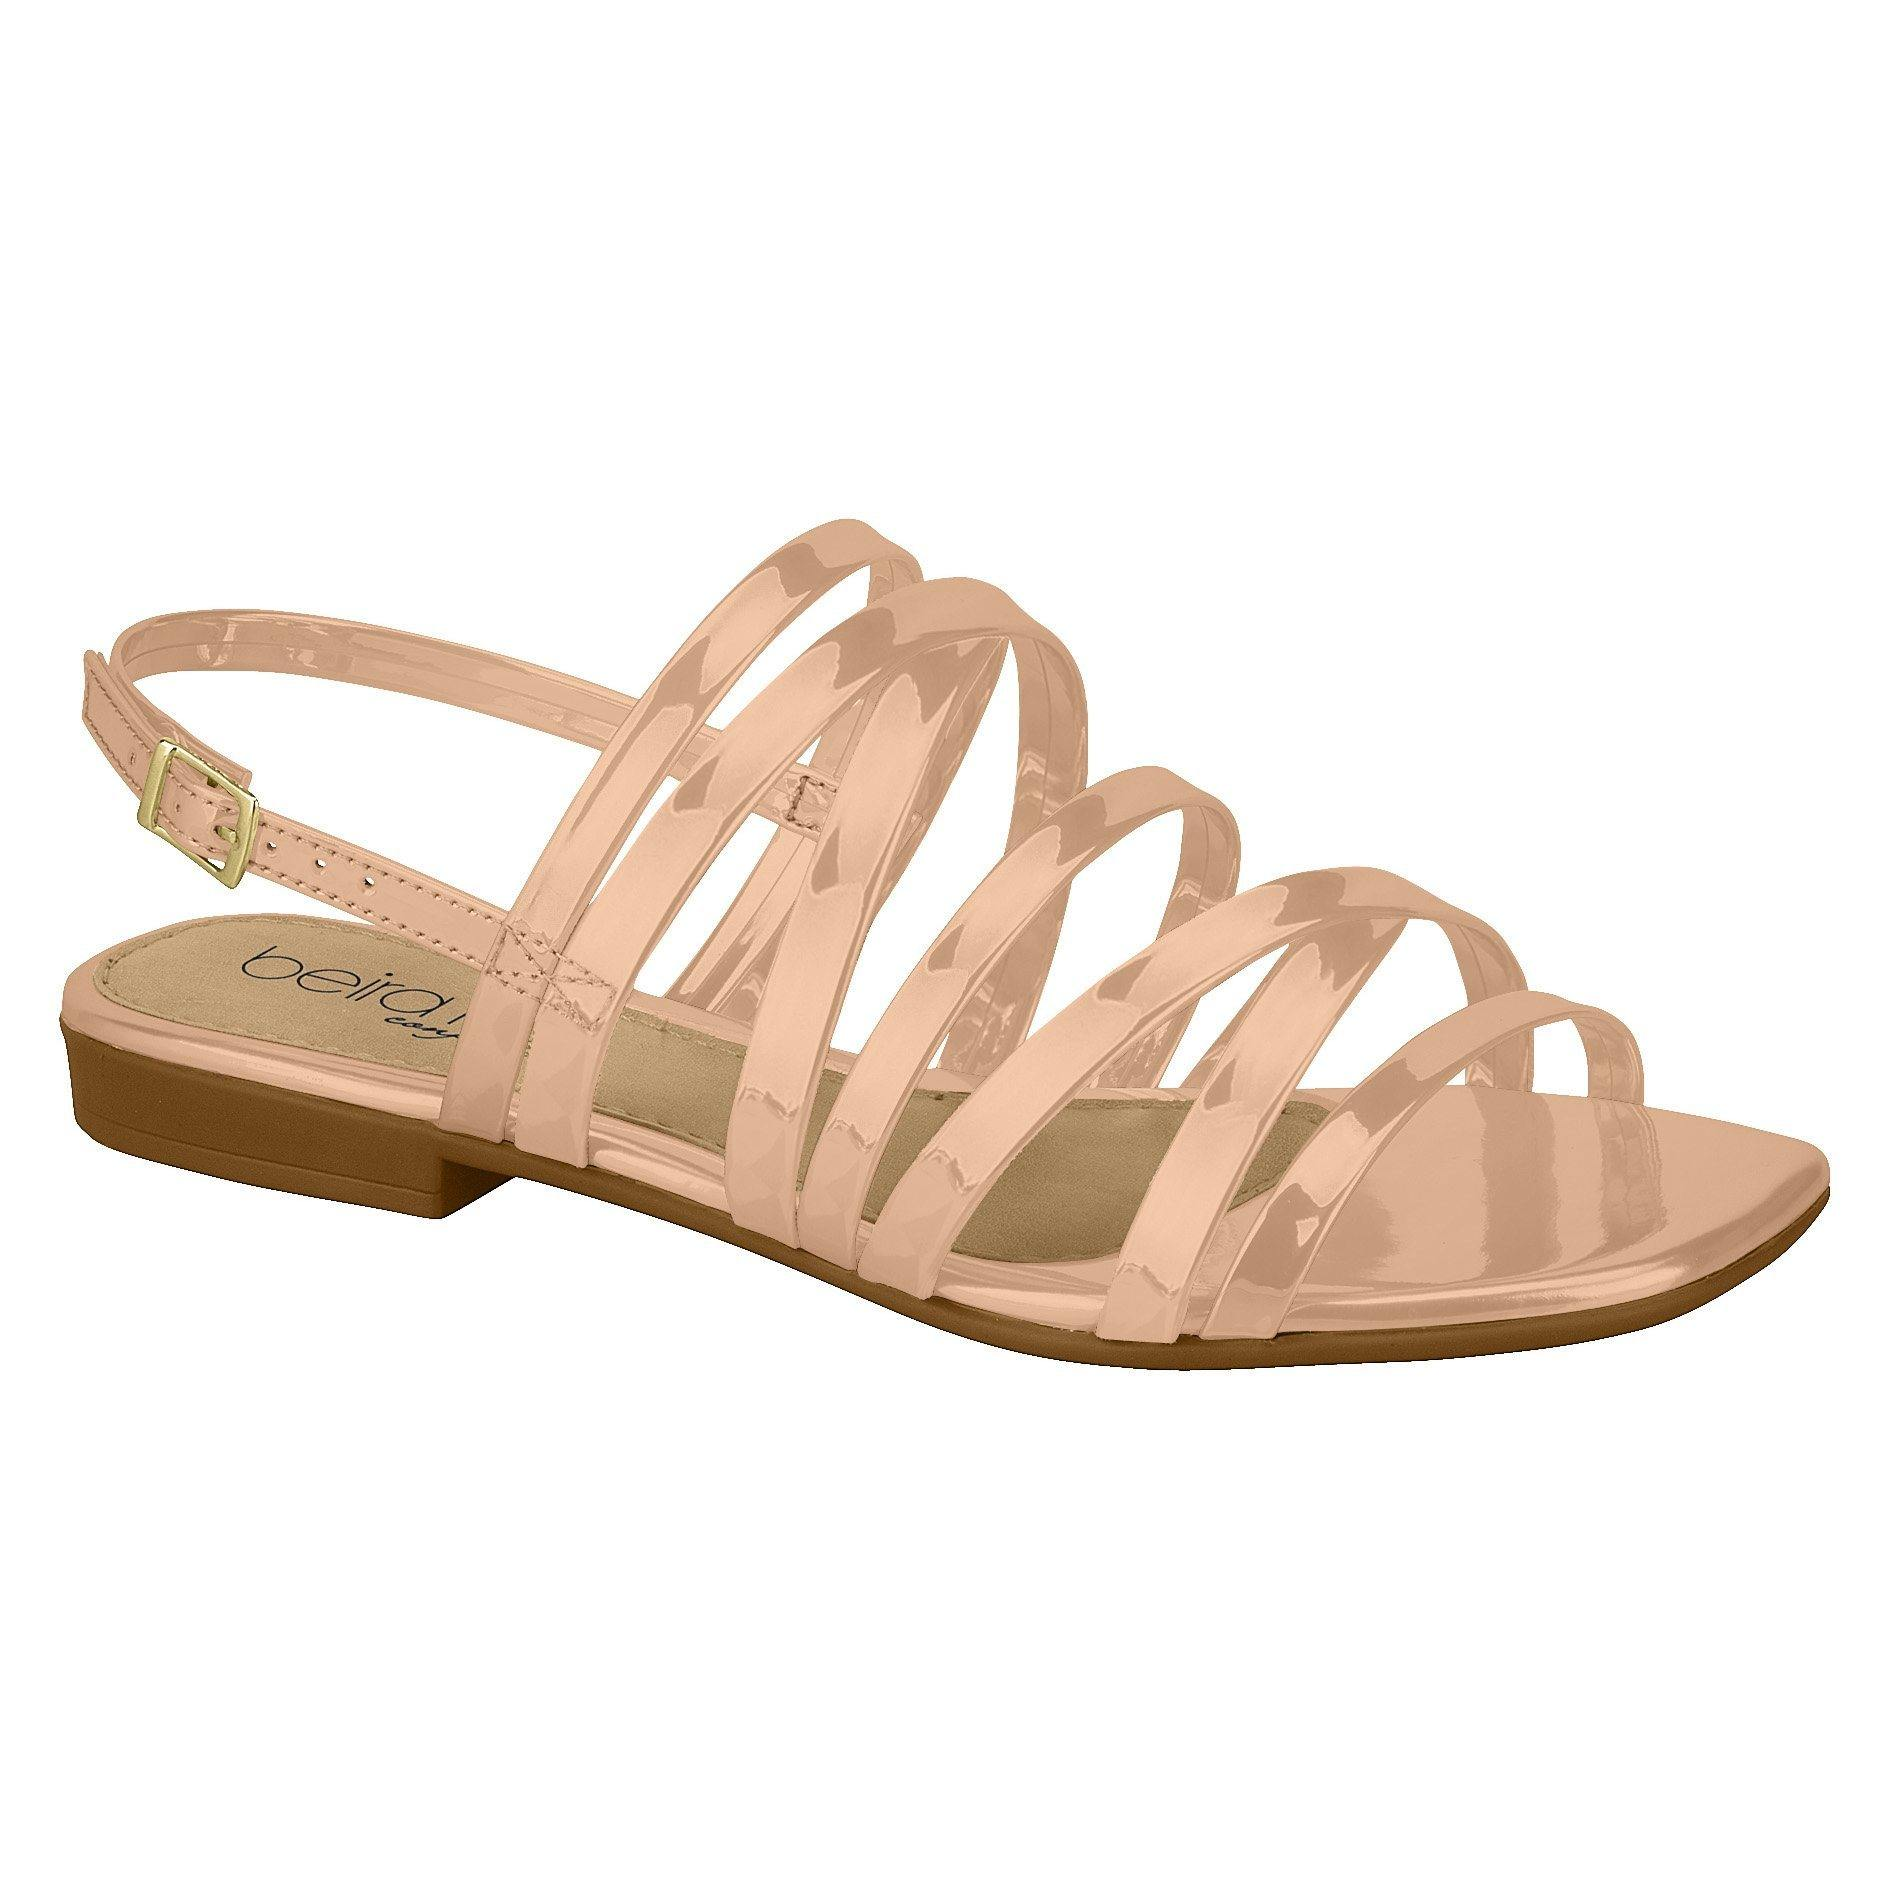 Beira Rio 8394-104 Strappy Flat Sandal in Nude Patent